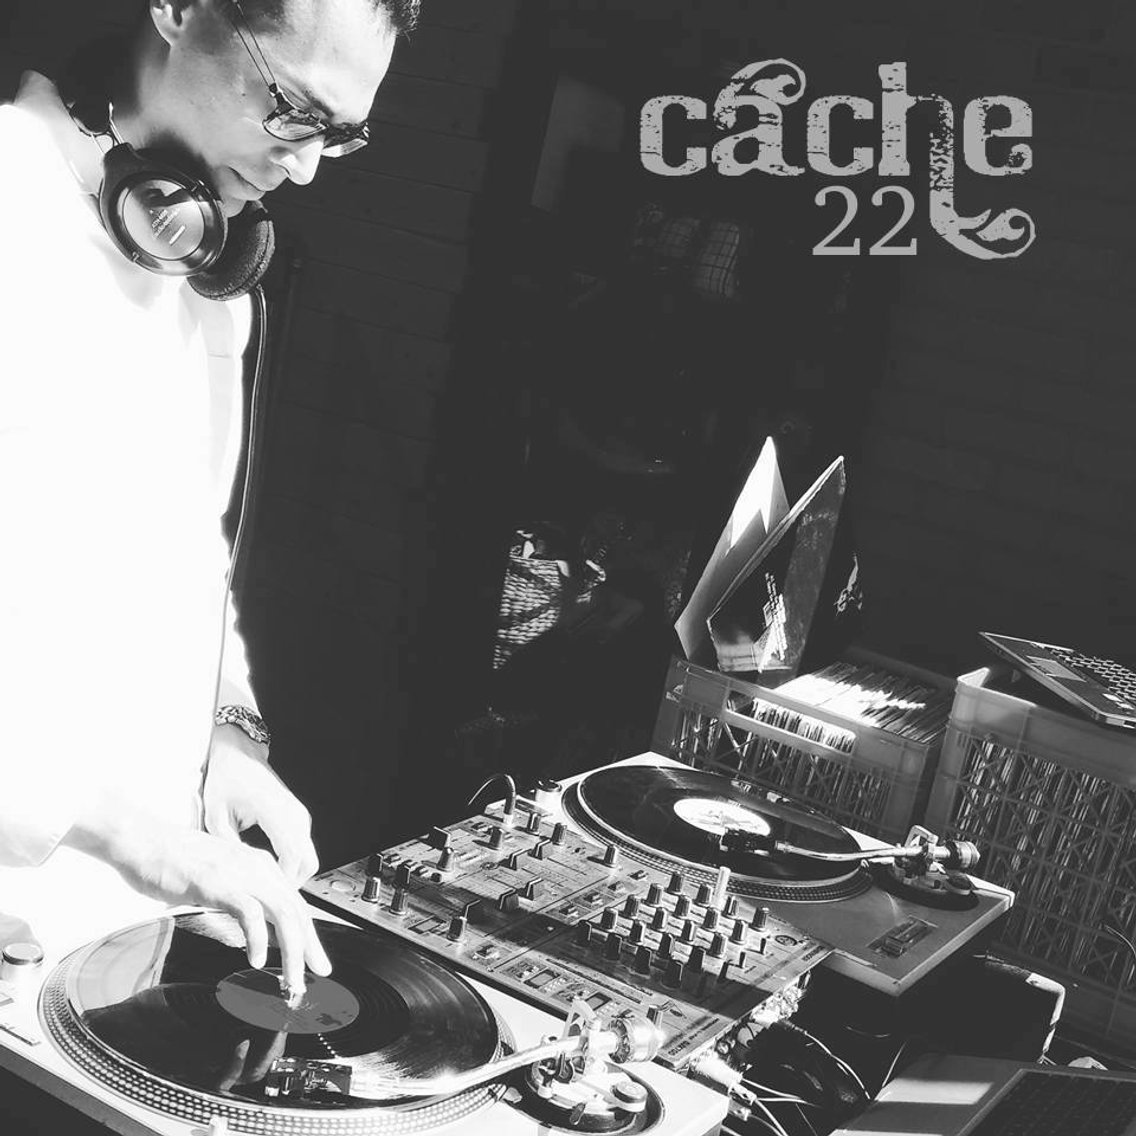 Tapes by Cache 22 - Cover Image